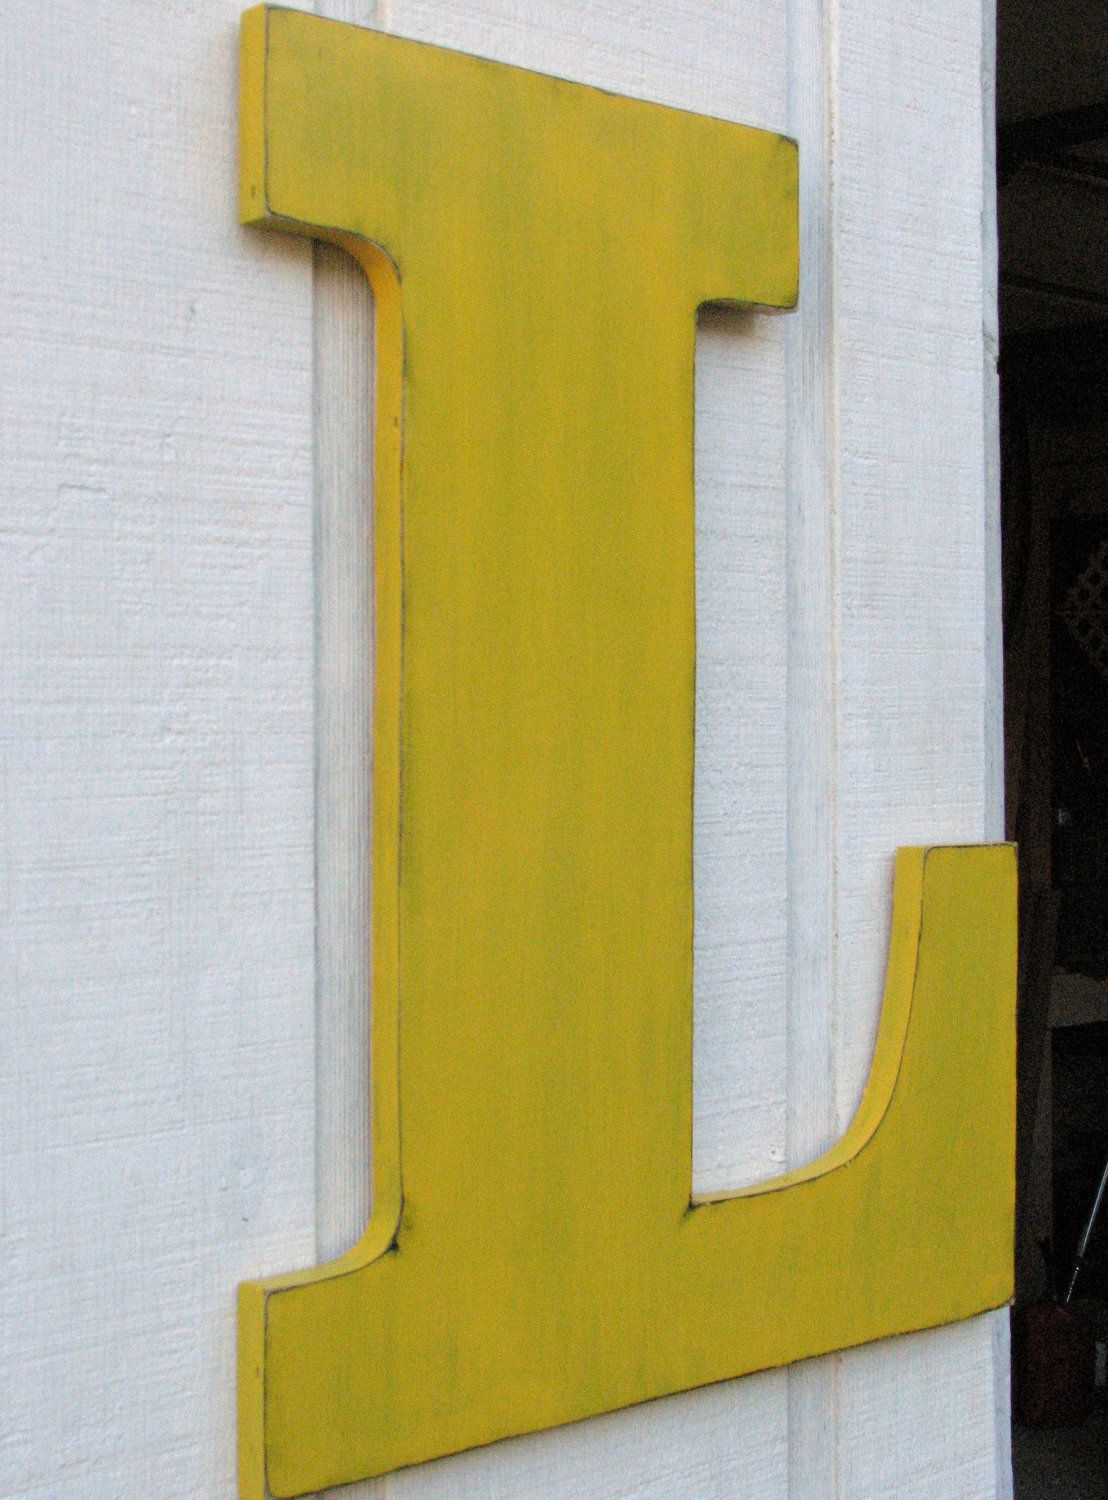 extra large wedding wooden letter l 2 feet distressed in golden yellow 24 tall wood name letters custom wedding gift photo prop 5800 via etsy